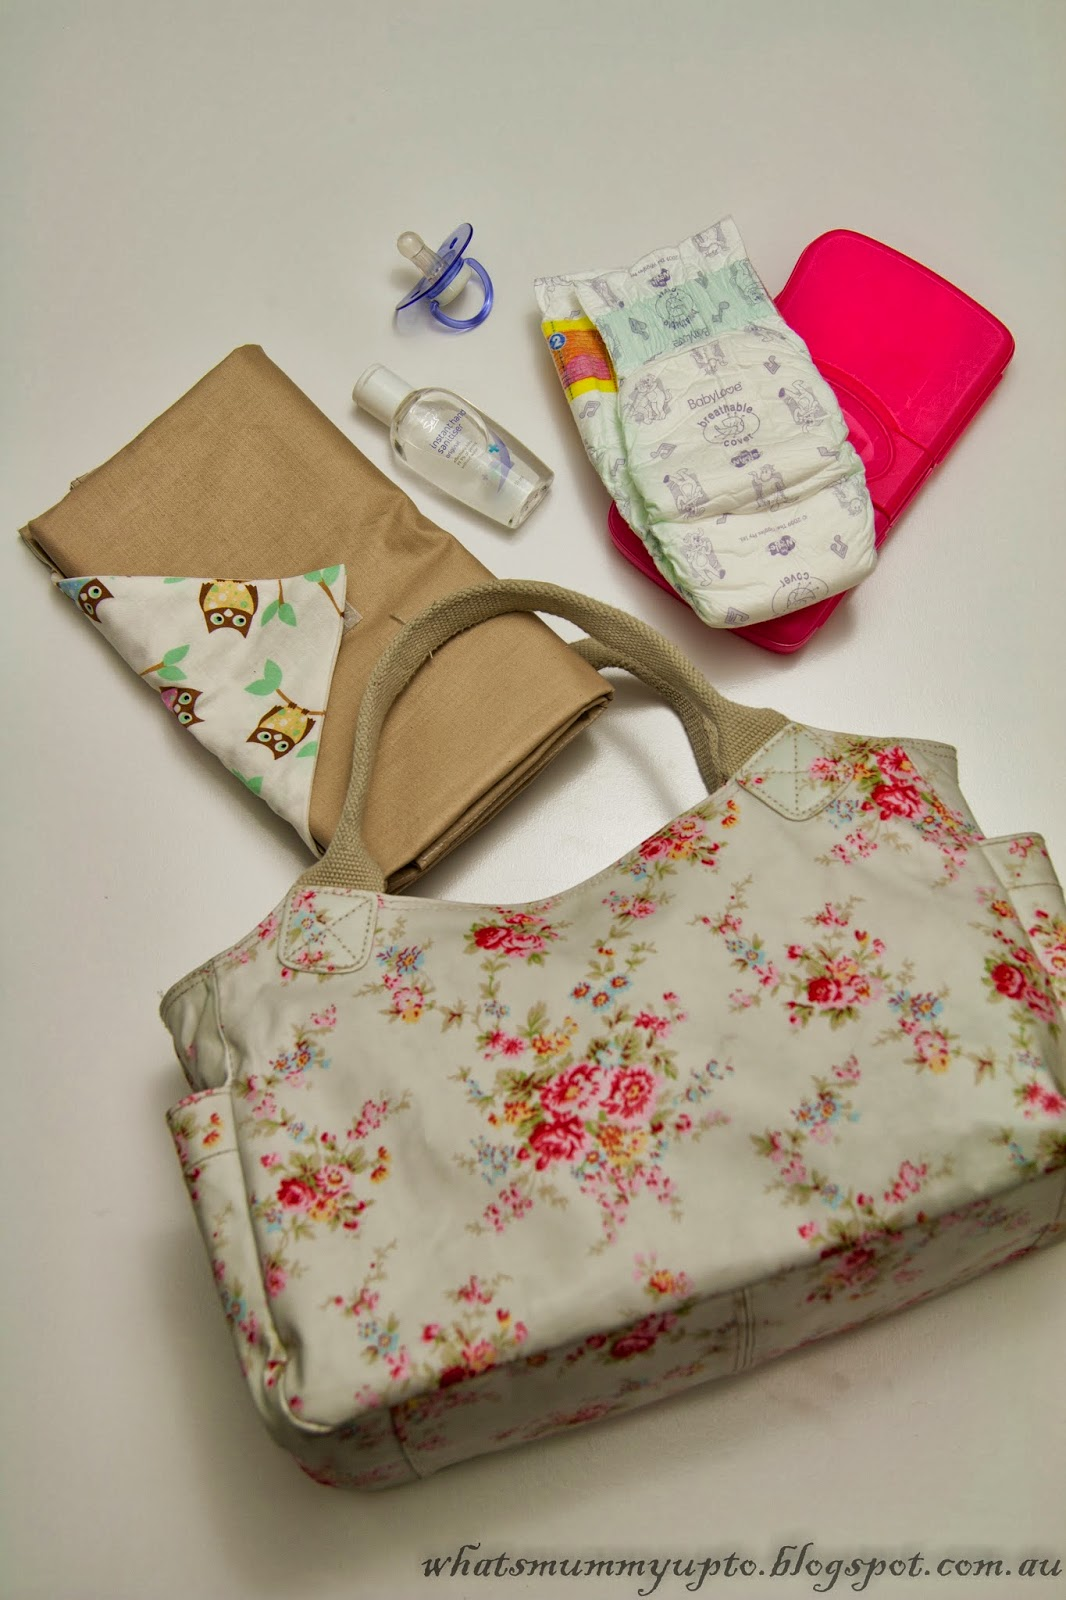 Sewing Project Fabric Basket Tutorial: What's Mummy Up To ...: Tutorial: Baby Change-Mat Clutch